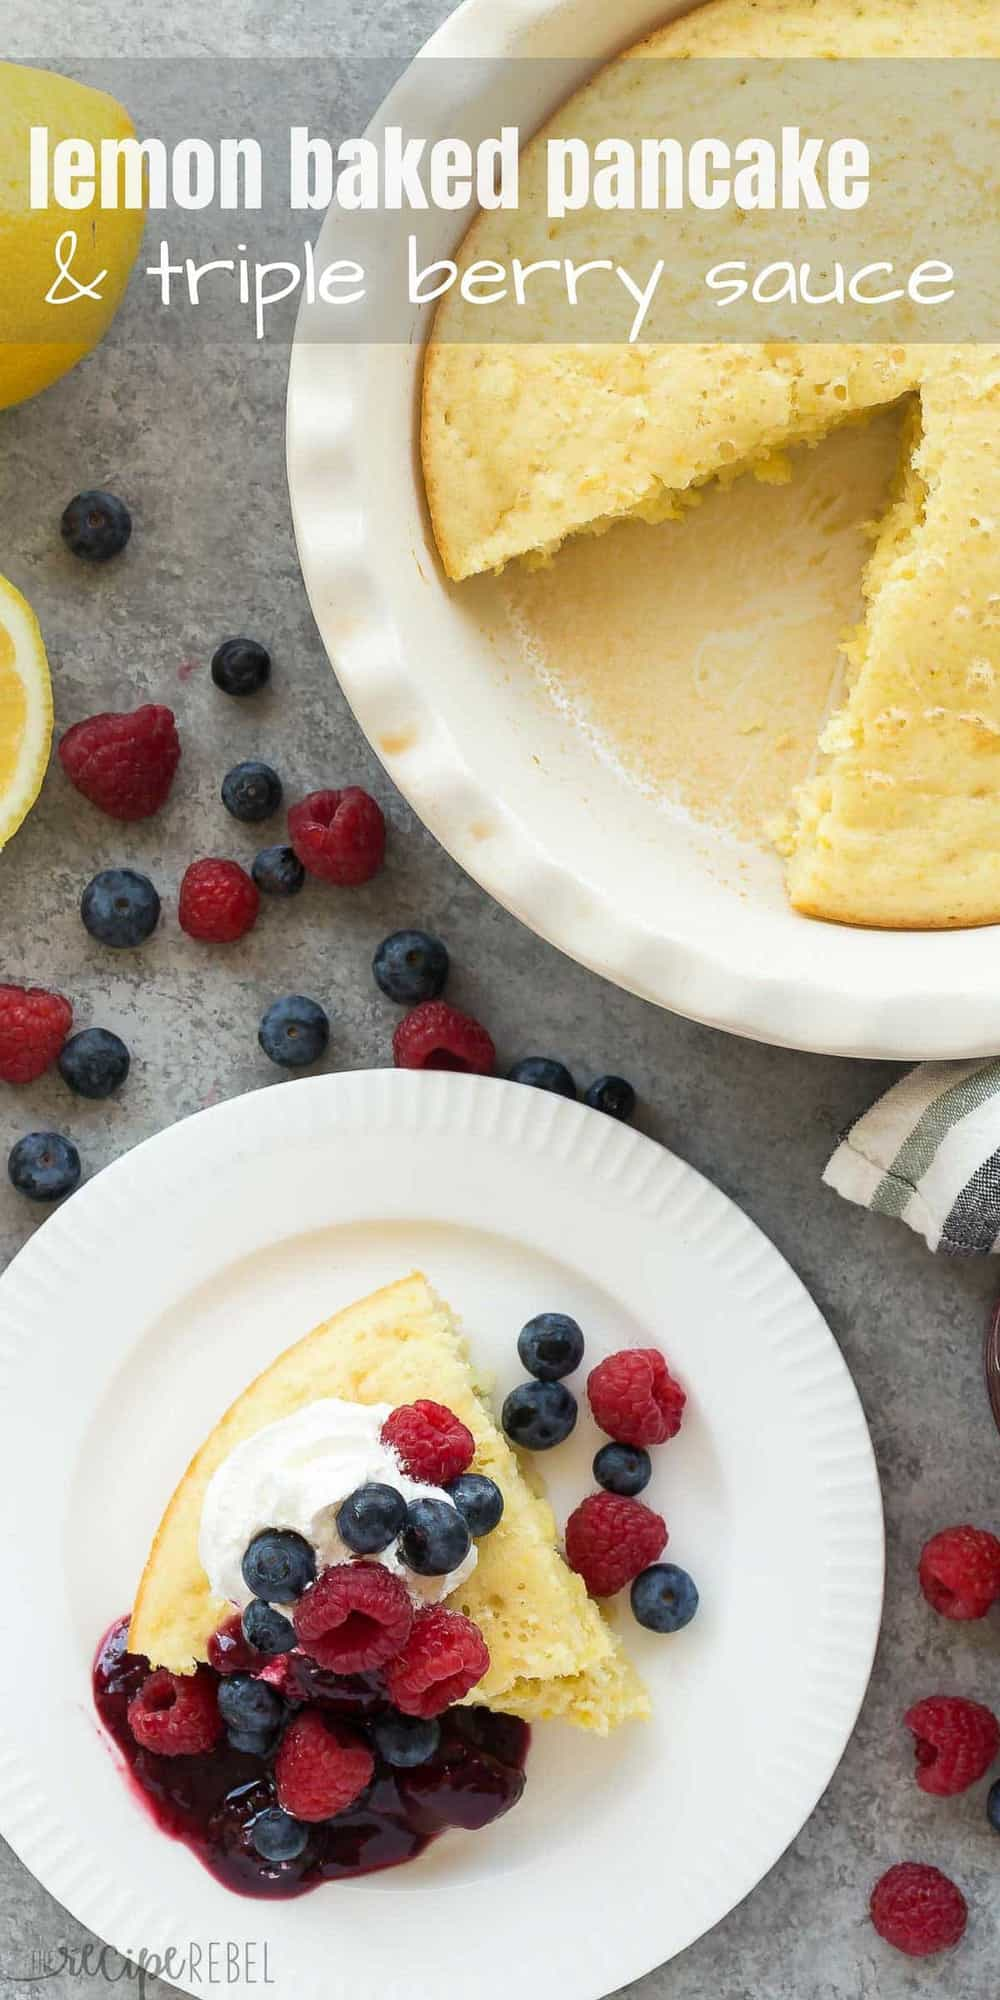 This easy Lemon Baked Pancake with Triple Berry Sauce is perfect for serving the brunch crowd at Mother's Day, Easter or Christmas -- no flipping required! My favorite way to make pancakes! Includes step by step recipe video. | baked pancakes | easy breakfast | holiday brunch | healthy recipe